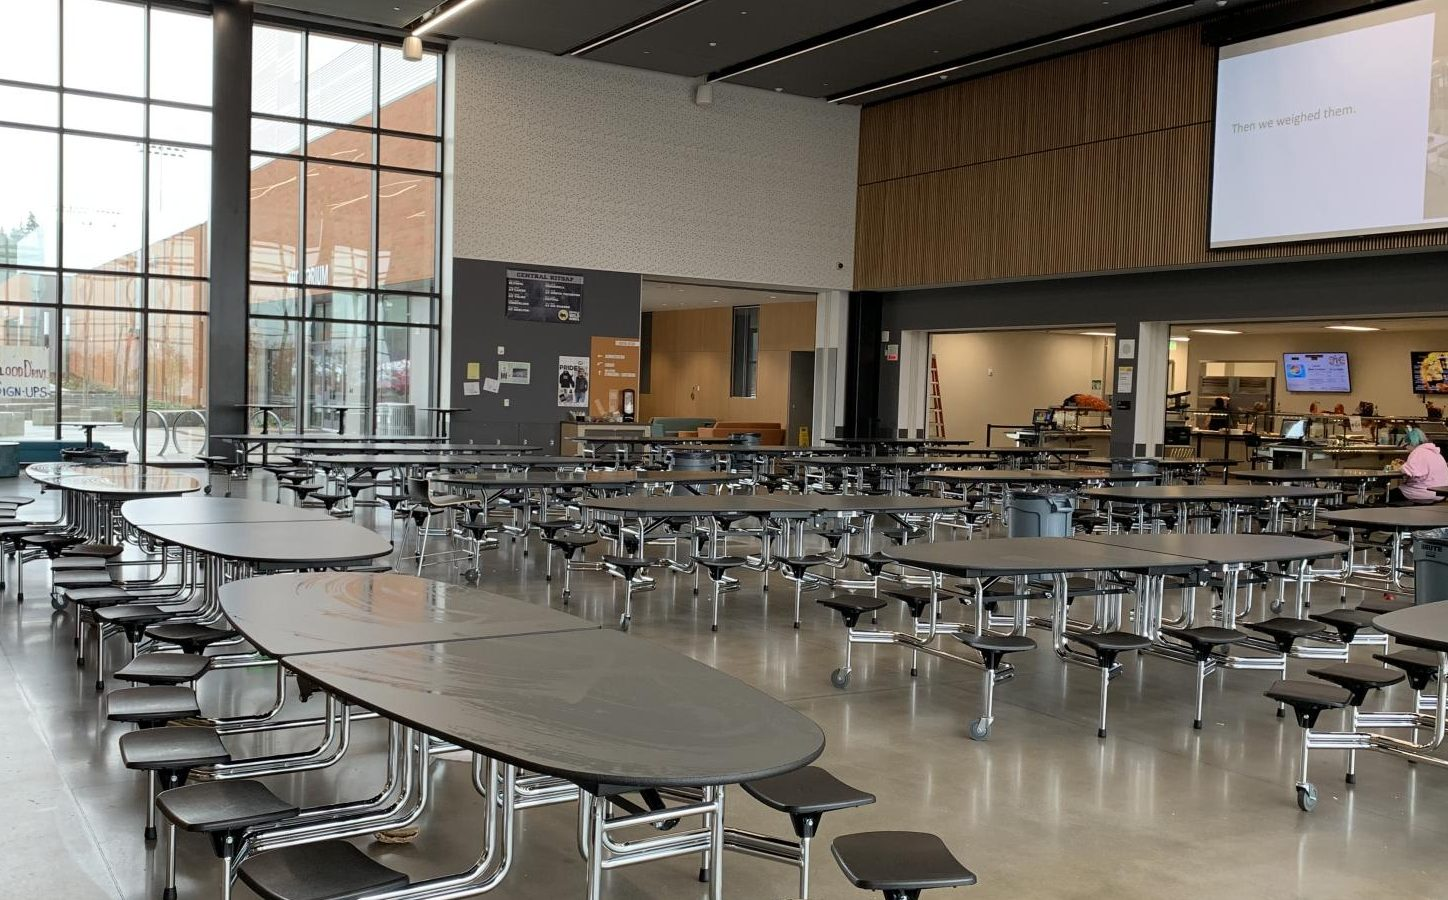 The cafeteria in which Homecoming was held. Adonis Bogetz